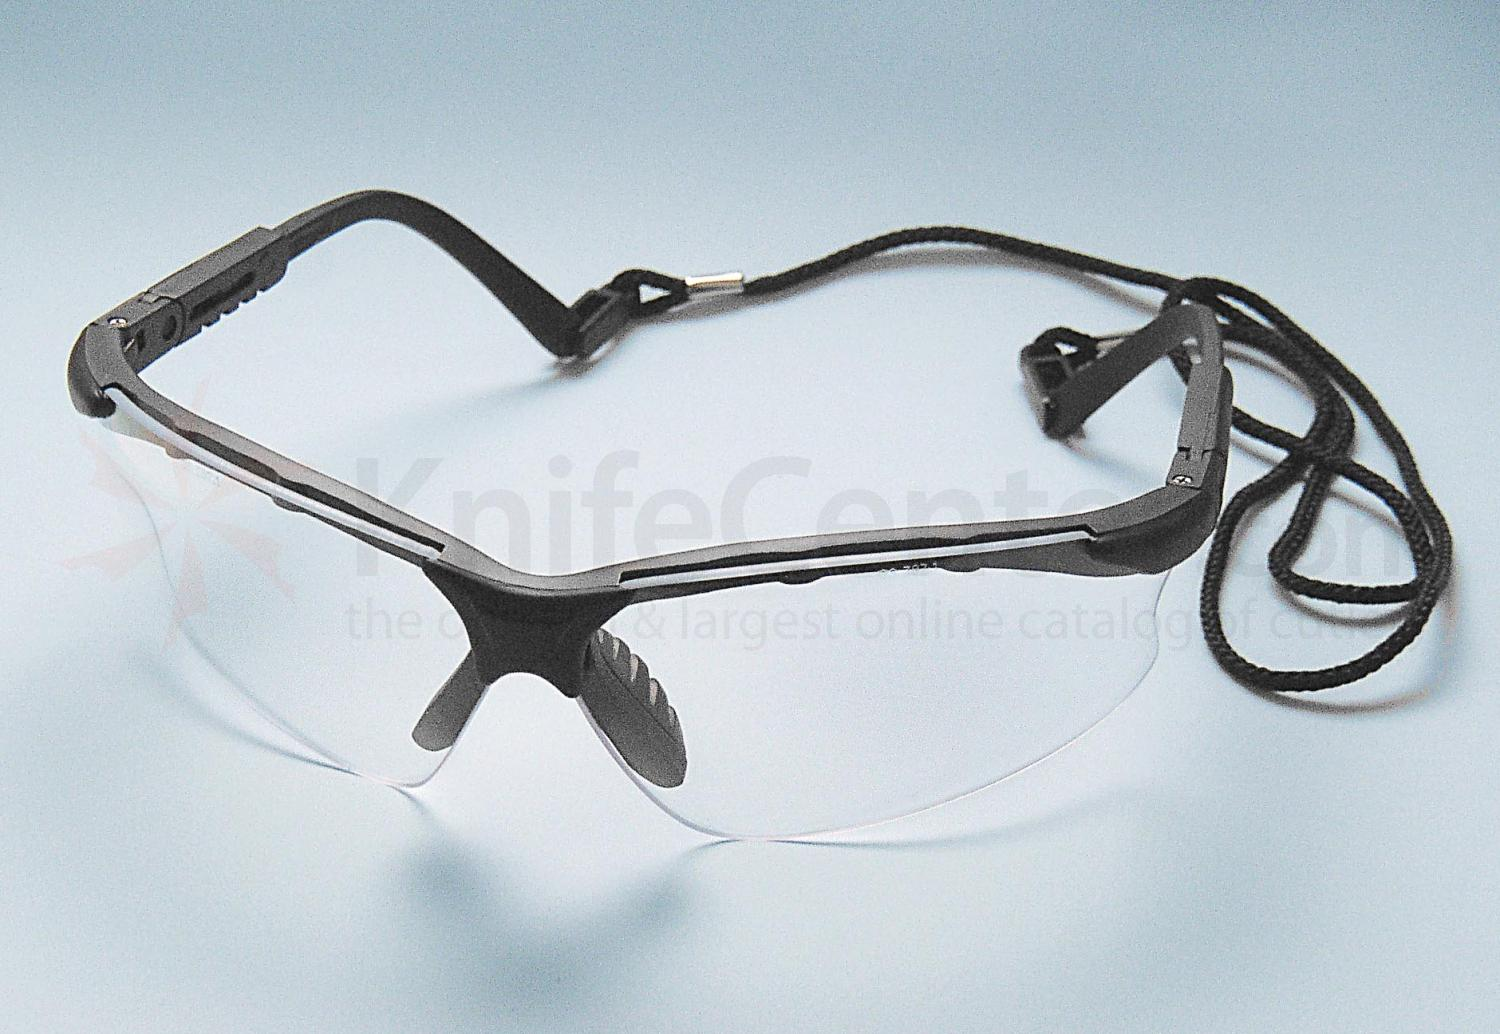 PhysiciansCare Brand BodyGear High Impact Safety Glasses with Microban Product Protection